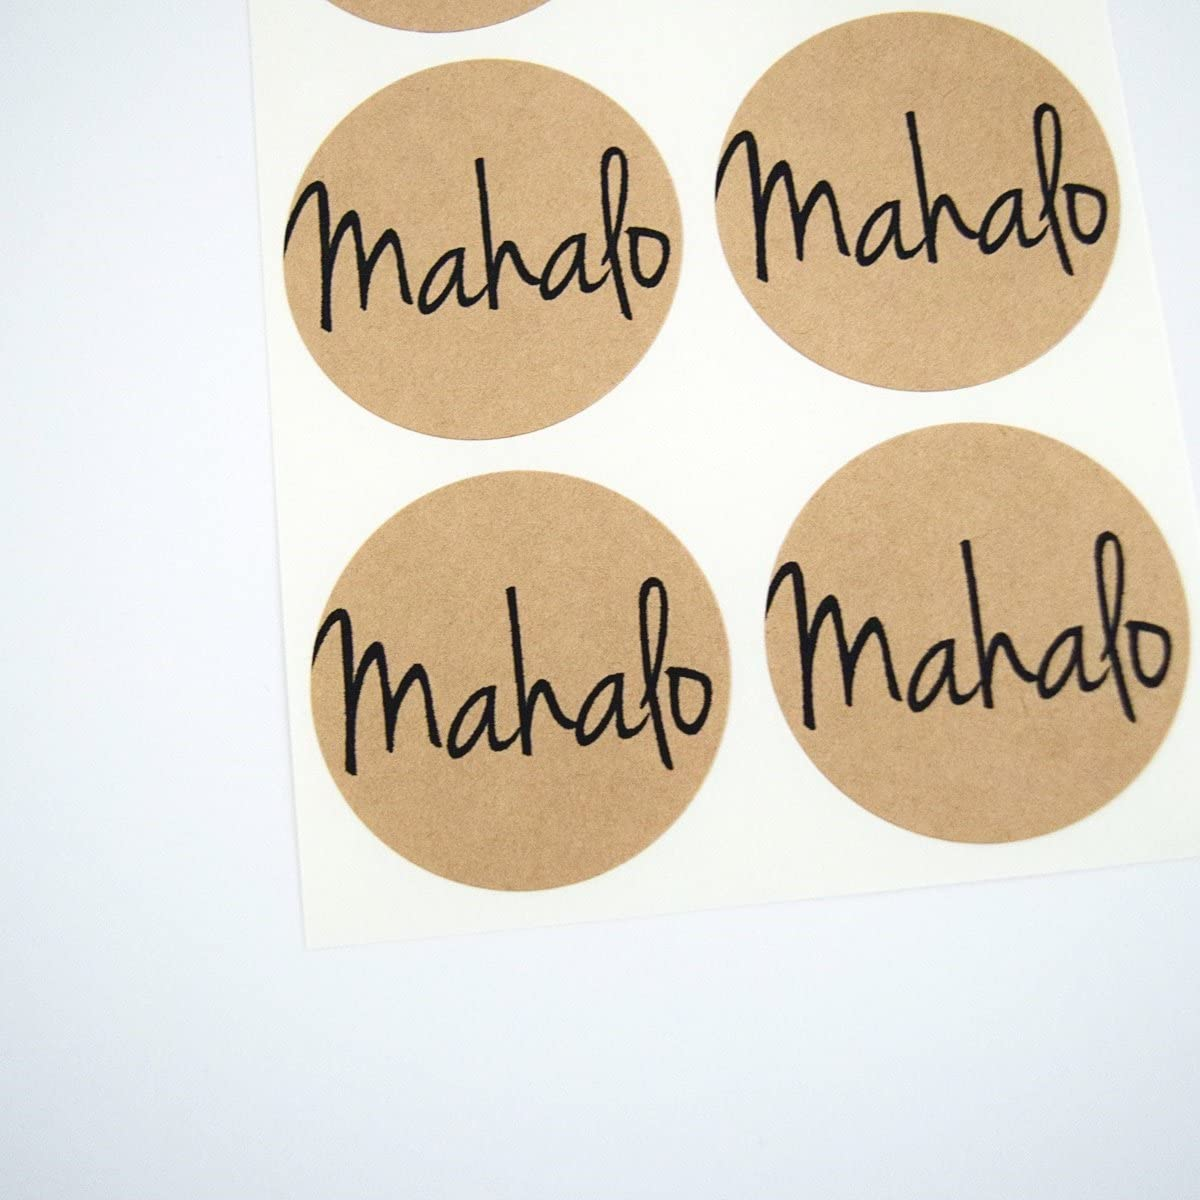 Showers and Parties Seals and Labels for Hawaiian Themed Weddings 30 Stickers Mahalo Round Stickers by Once Upon Supplies 1.5 Inches